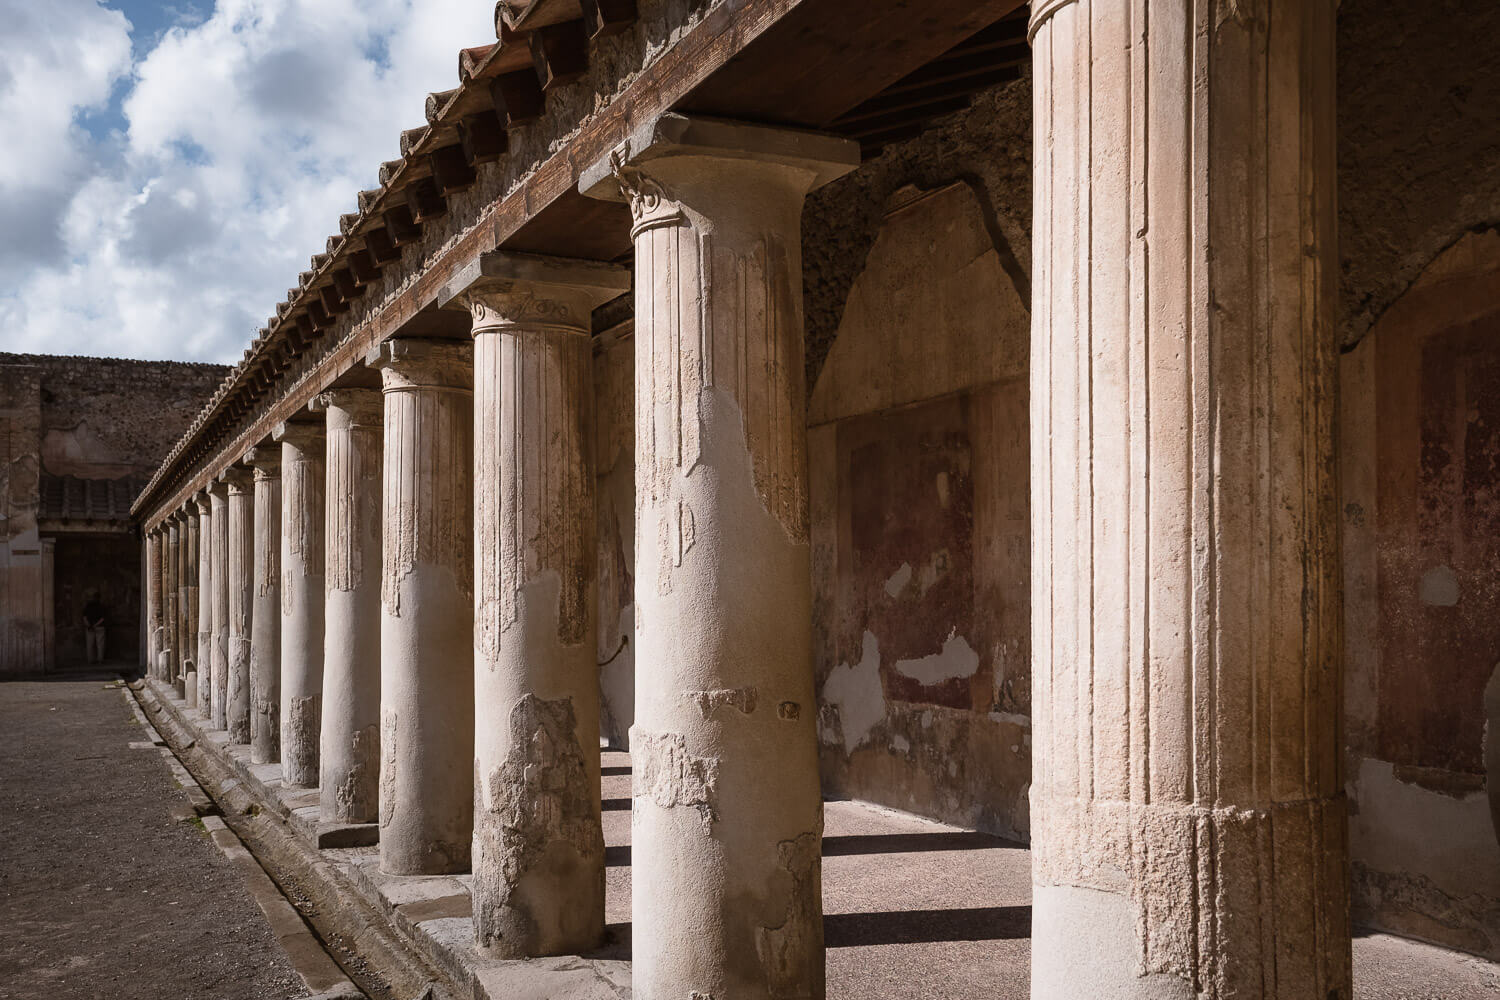 """Pillars casting a shadow, Pompeii, Italy. Travel photography and guide by © Natasha Lequepeys for """"And Then I Met Yoko"""". #pompeii #italy #fujifilm #travelphotography"""